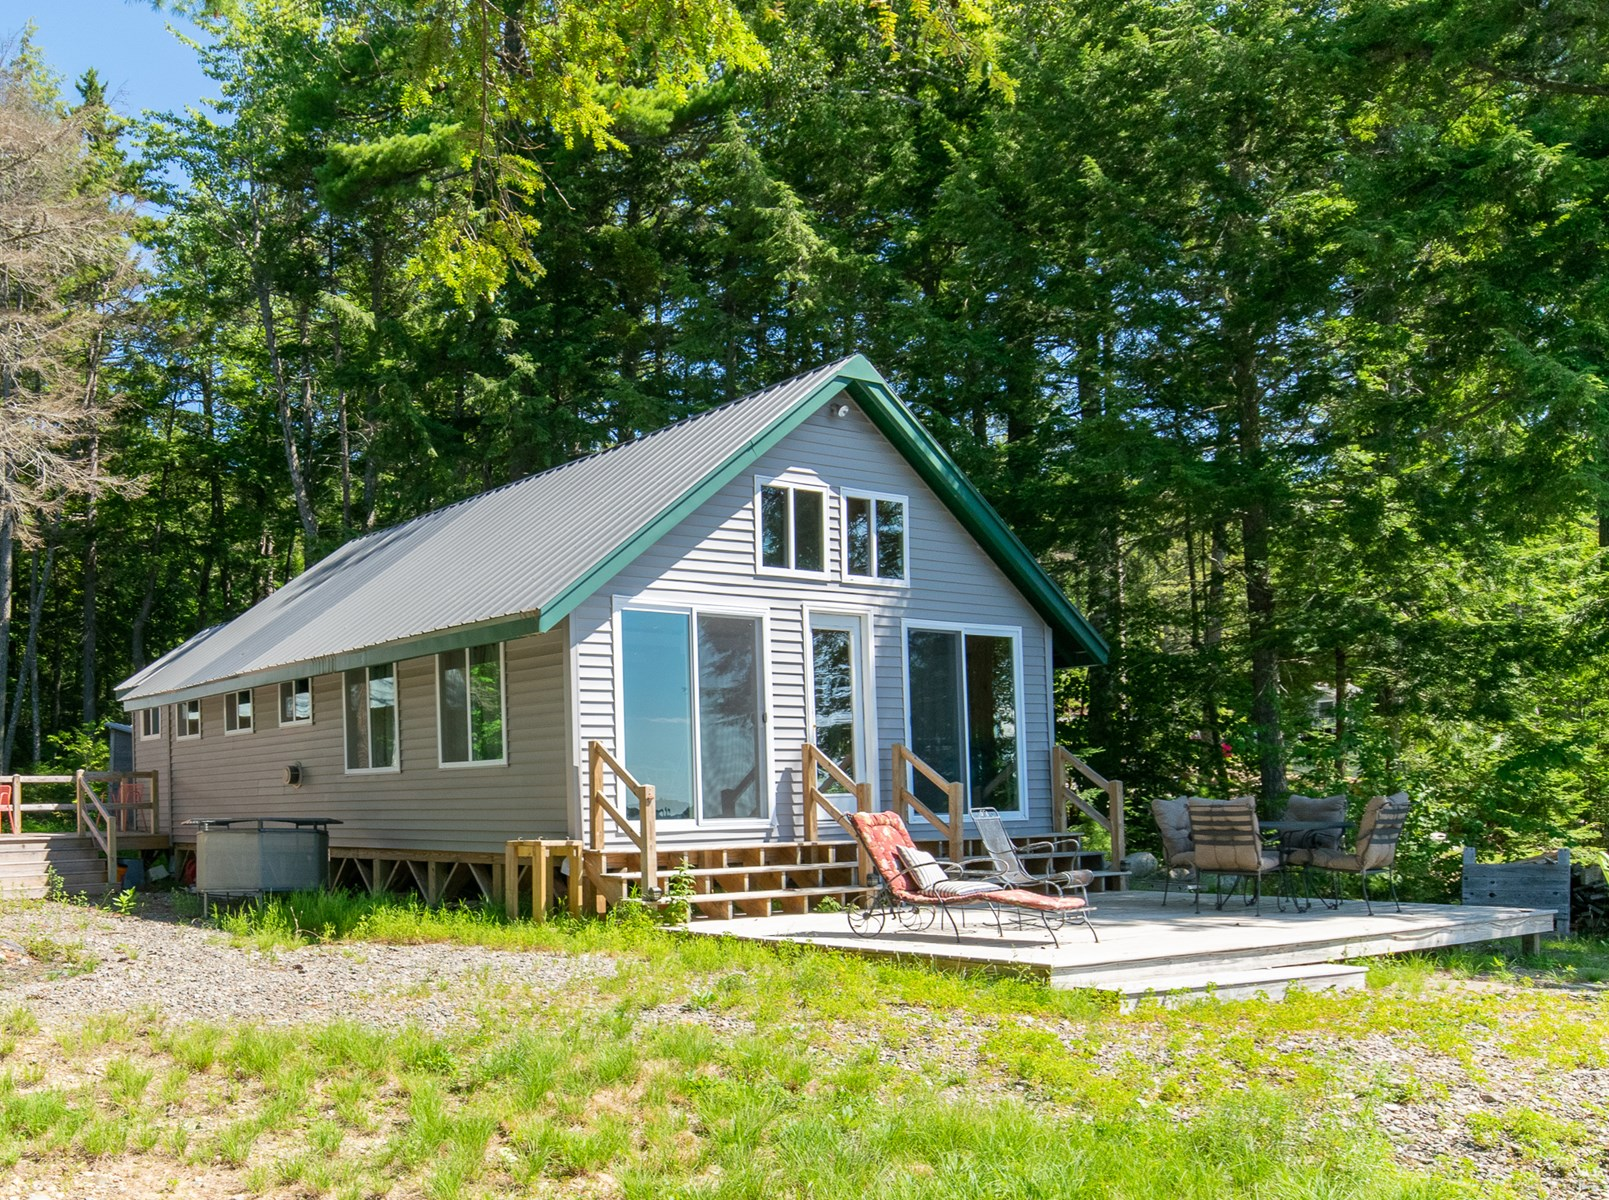 Lakefront Camp on a Pebble Beach For Sale in Maine